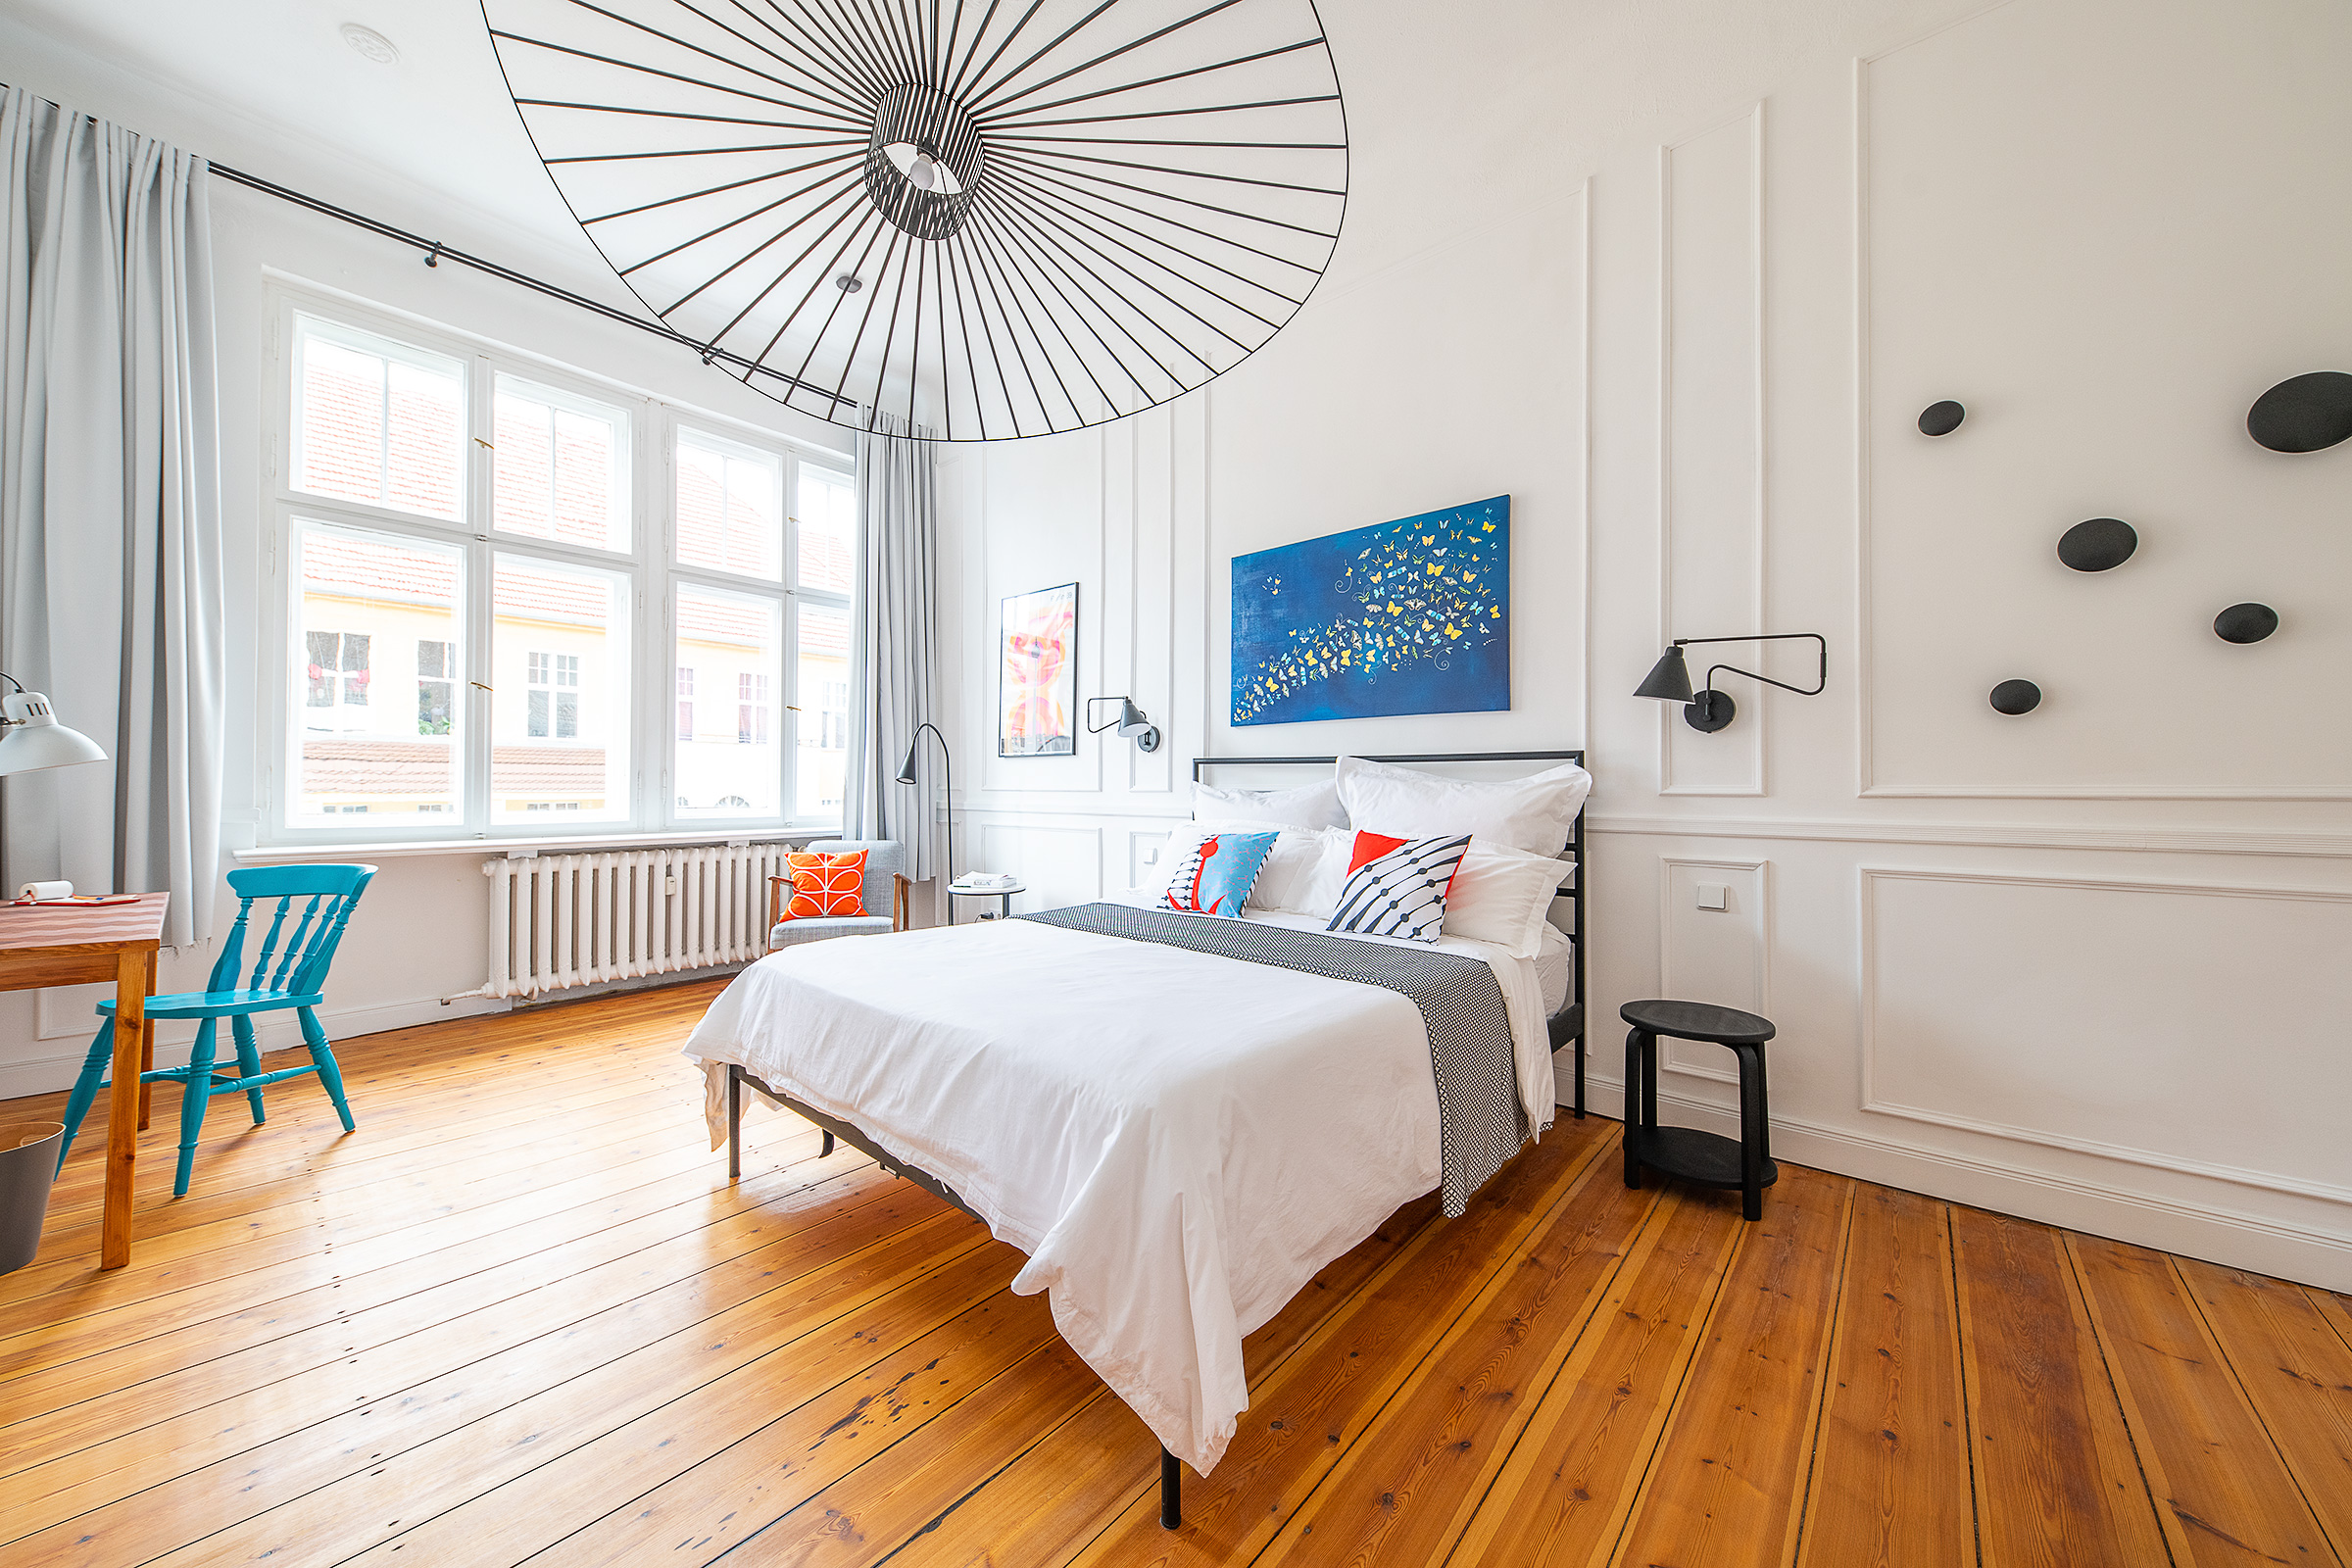 Bedroom with white panelled walls and sanded floorboards